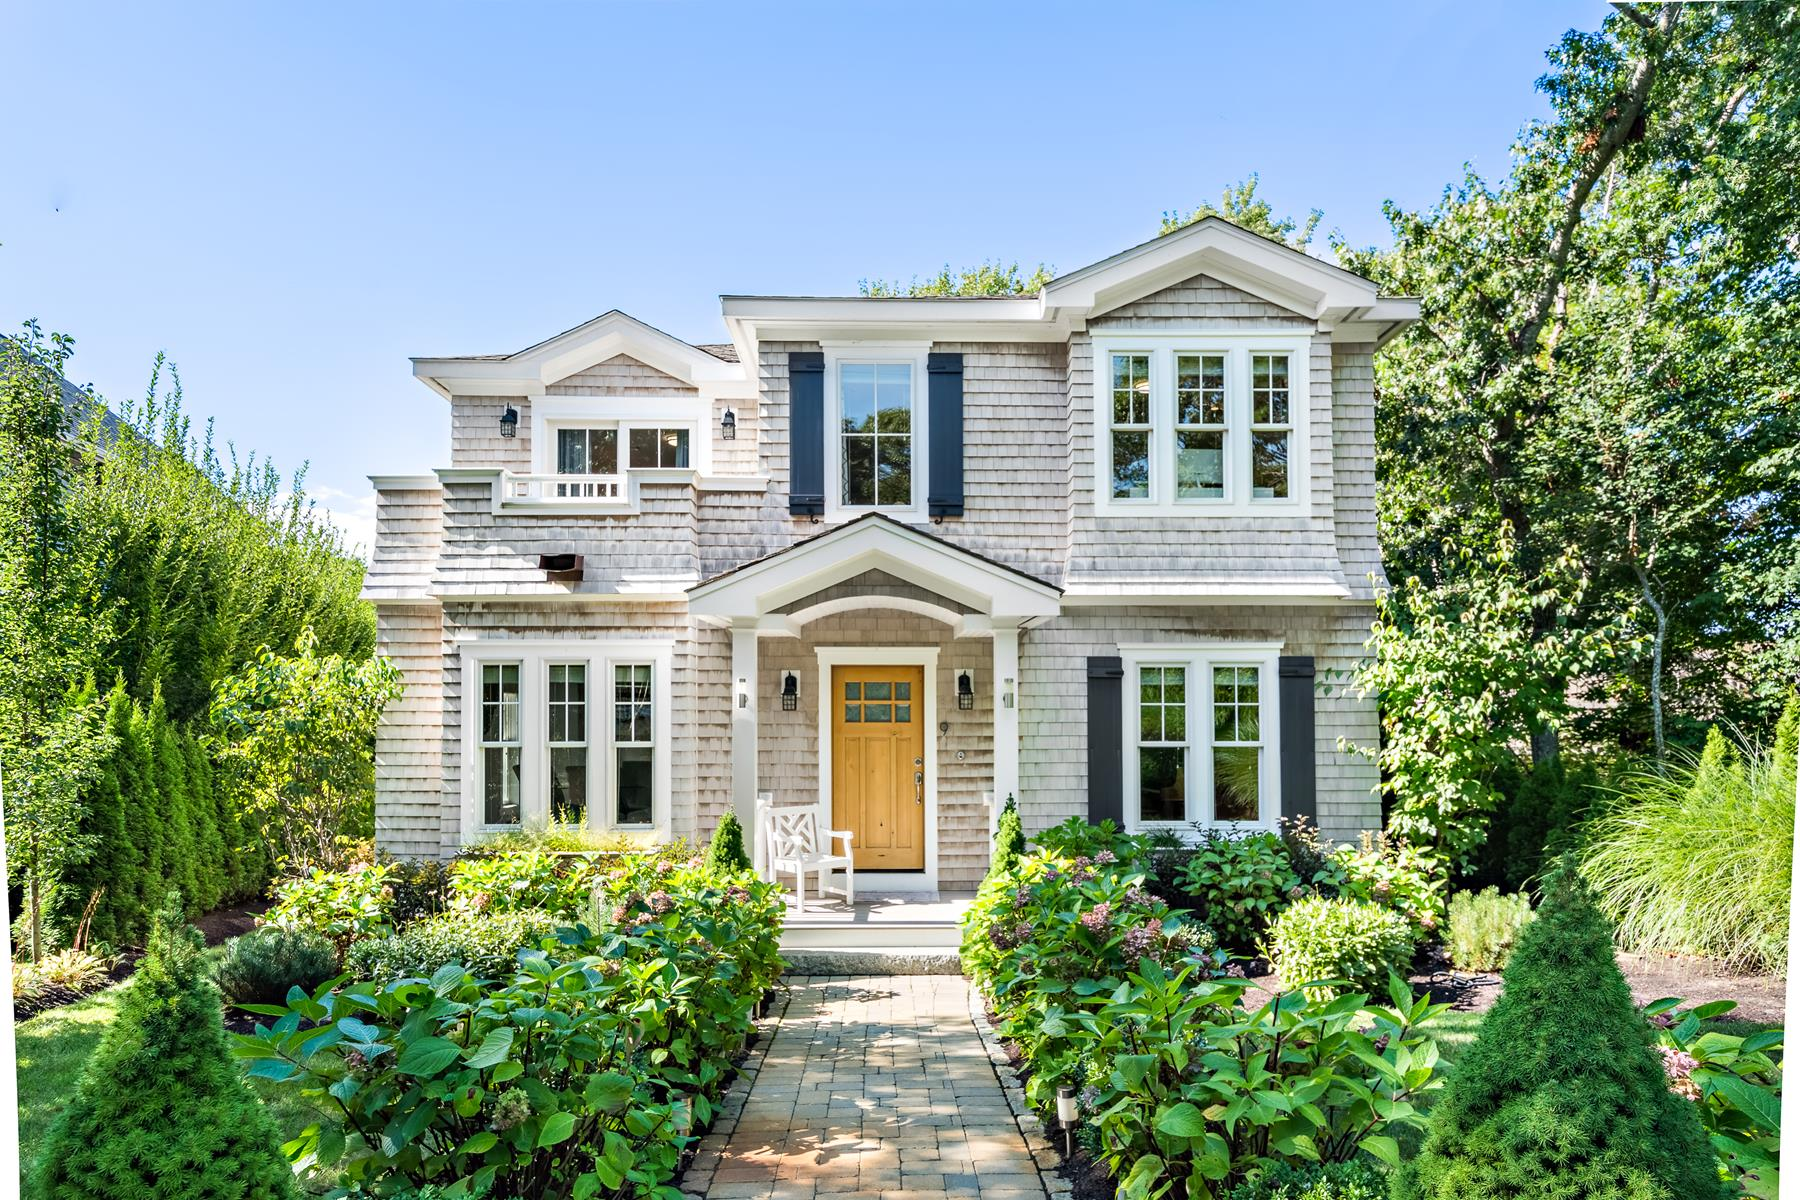 Single Family Homes for Active at Grandeur and Elegance 9 Willow Drive Provincetown, Massachusetts 02657 United States